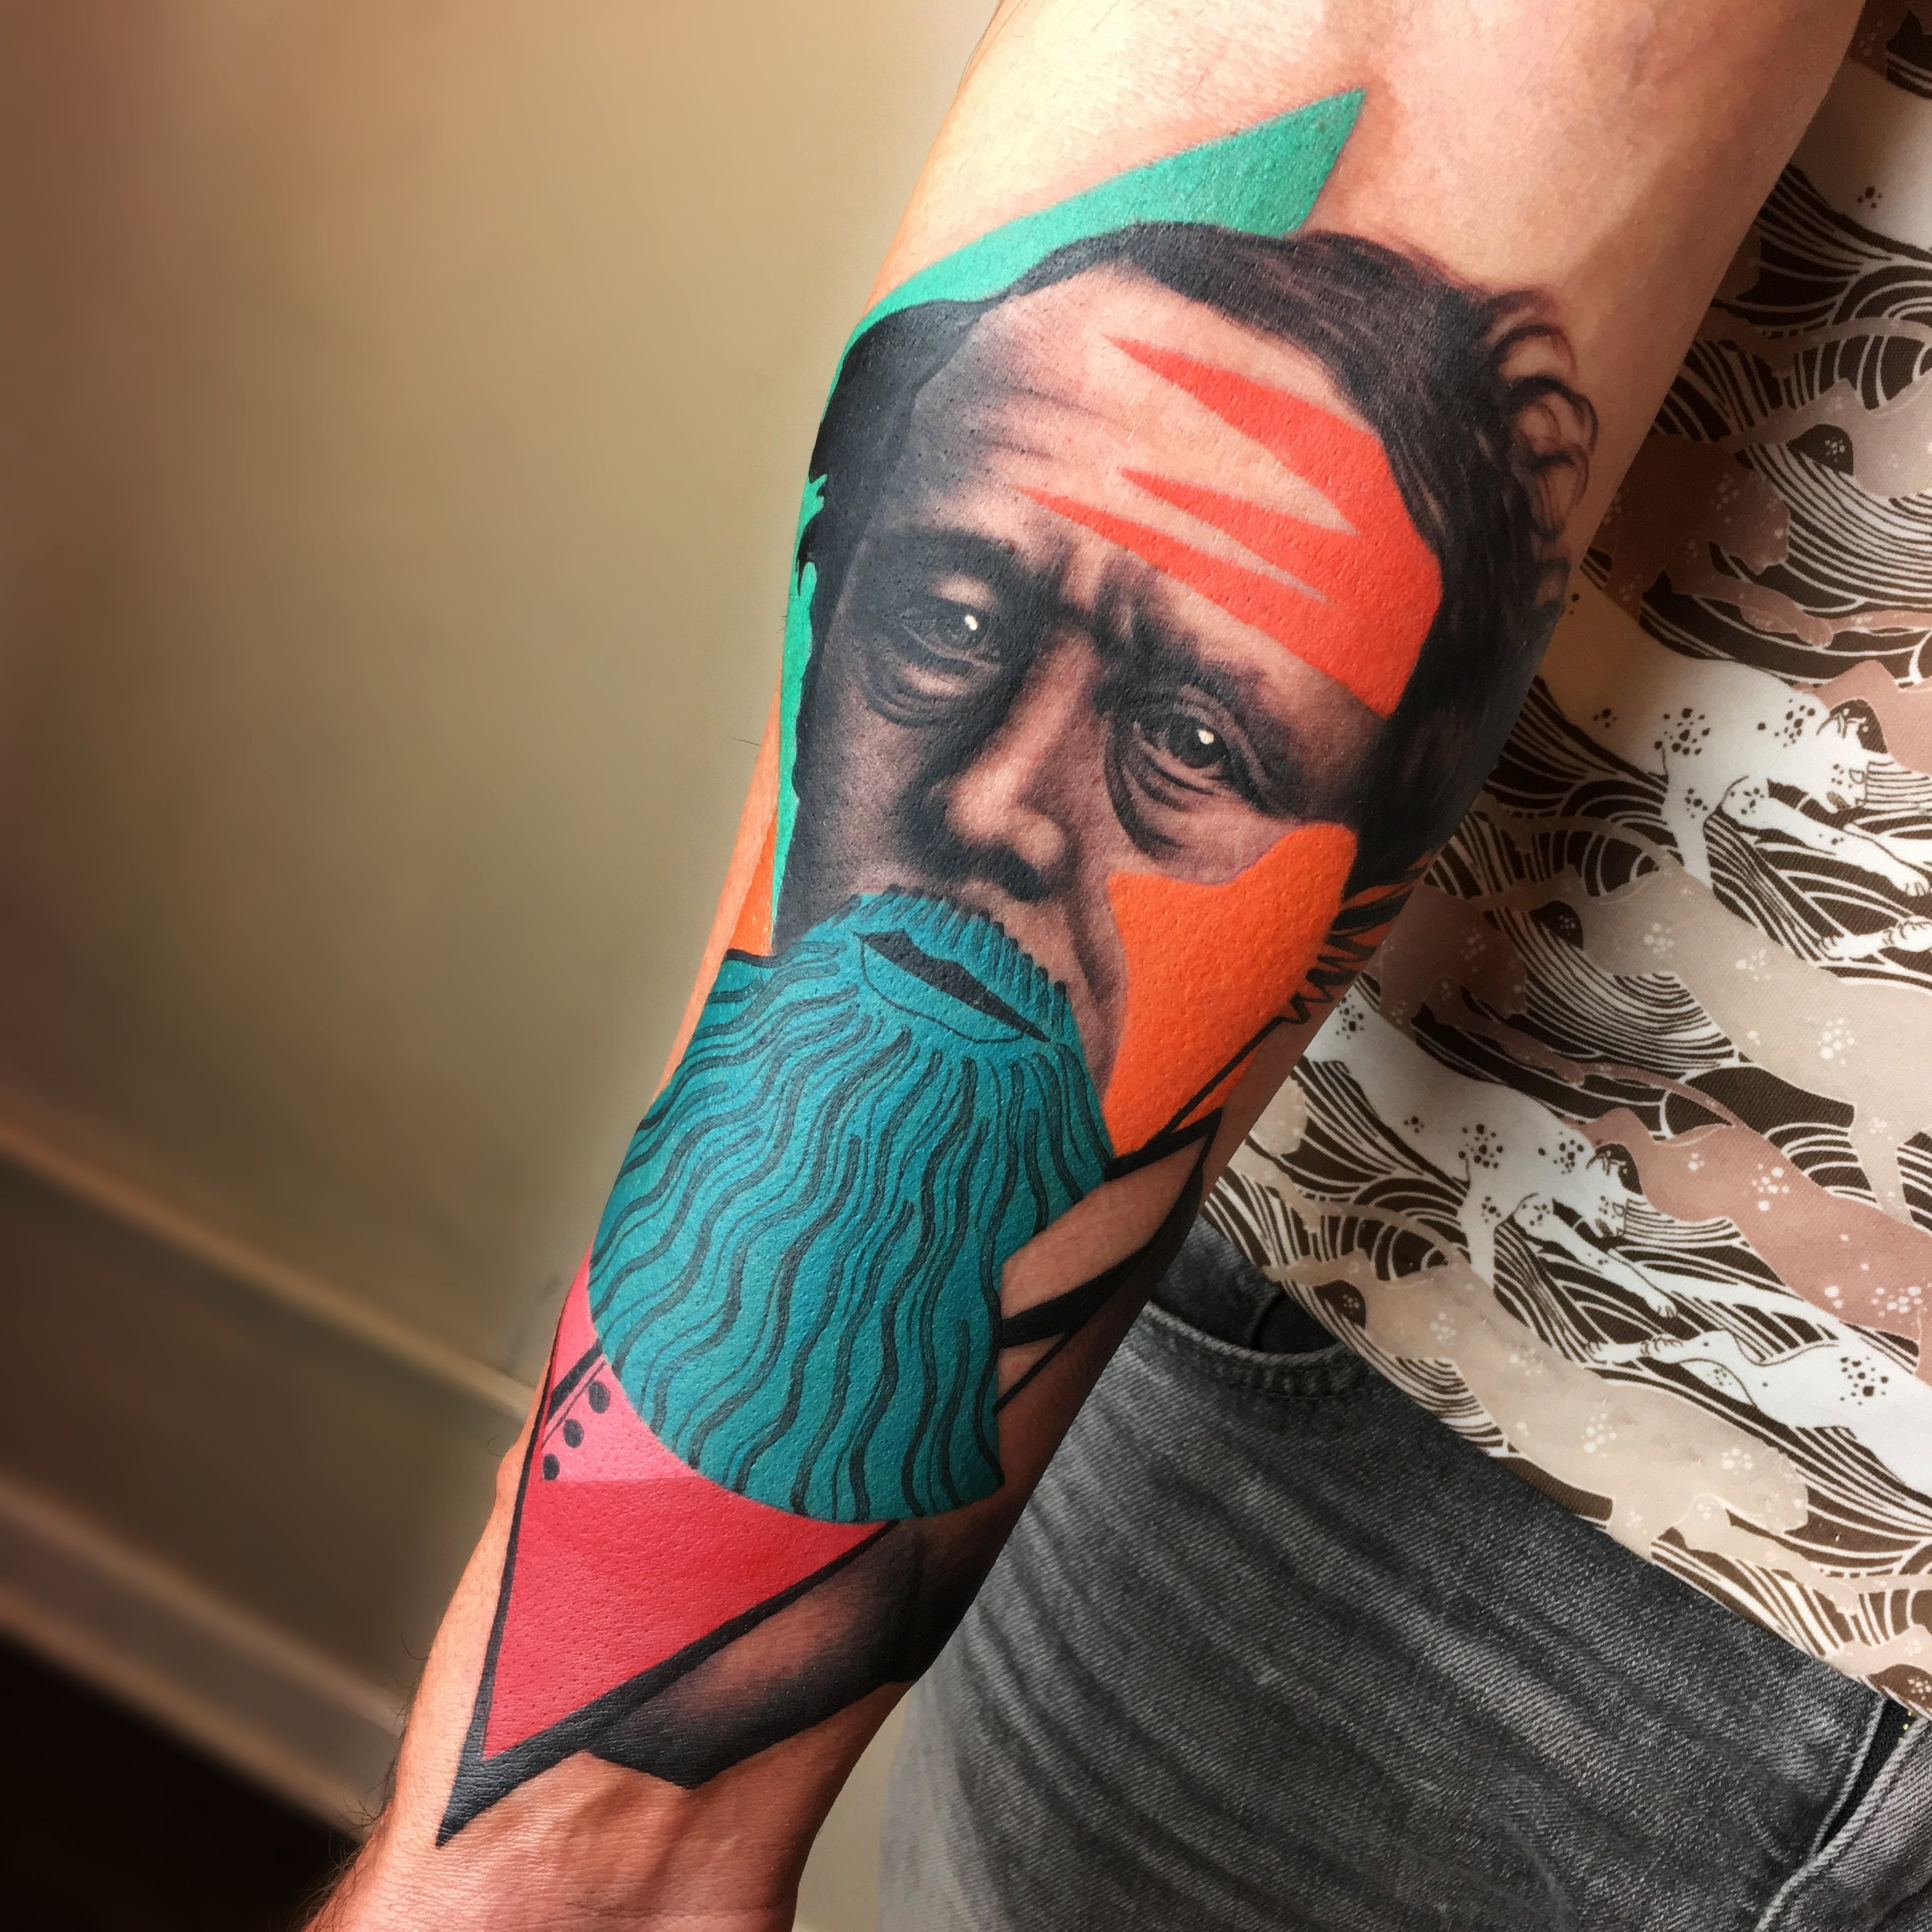 Cubic and Abstract Tattoos by Mike Boyd